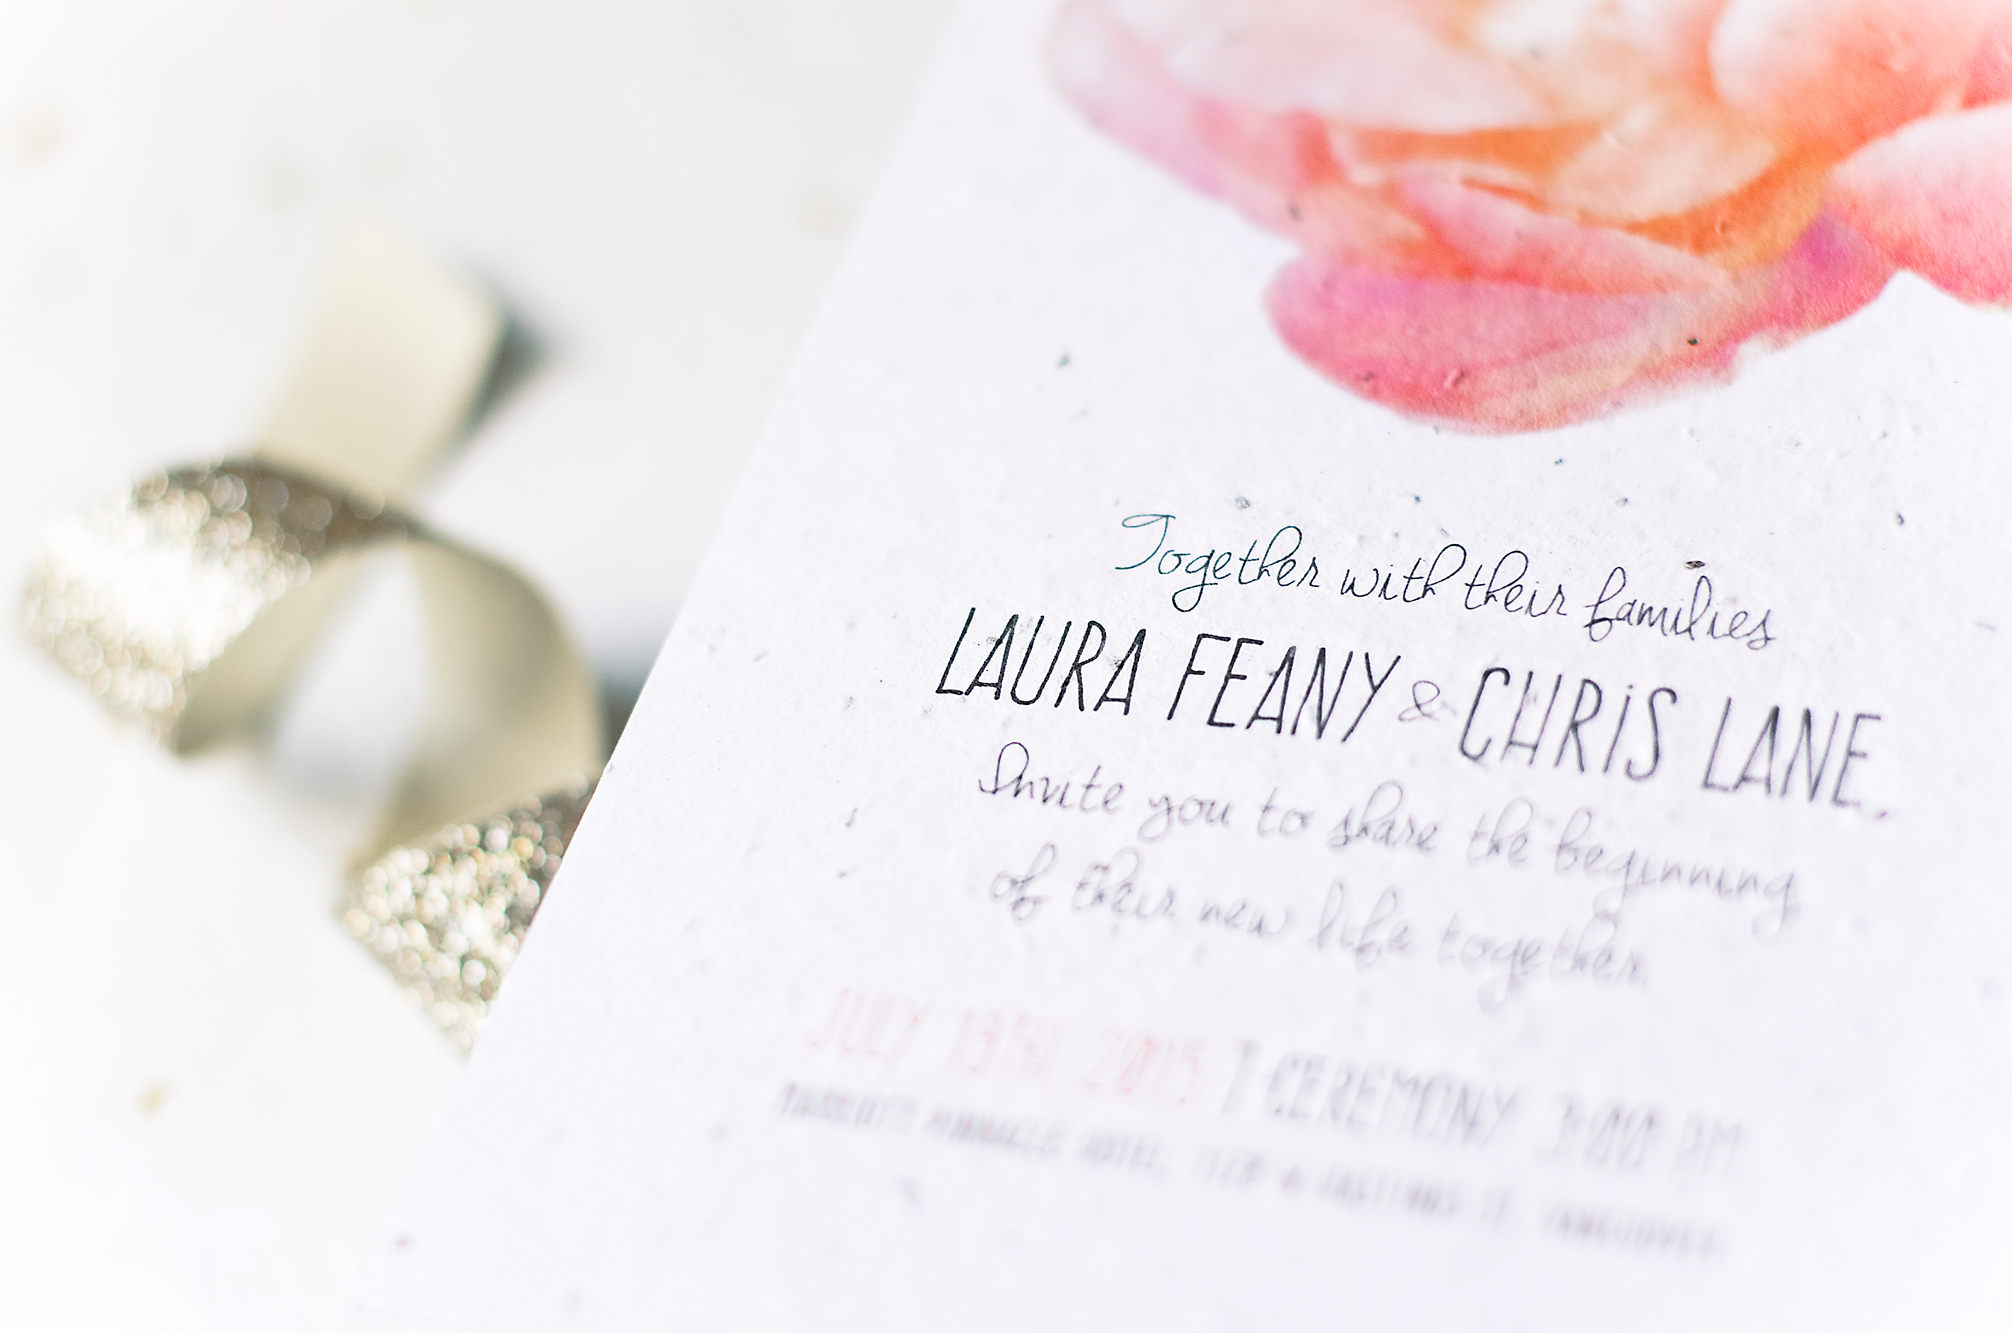 LAURA & CHRIS   /  wedding invitation